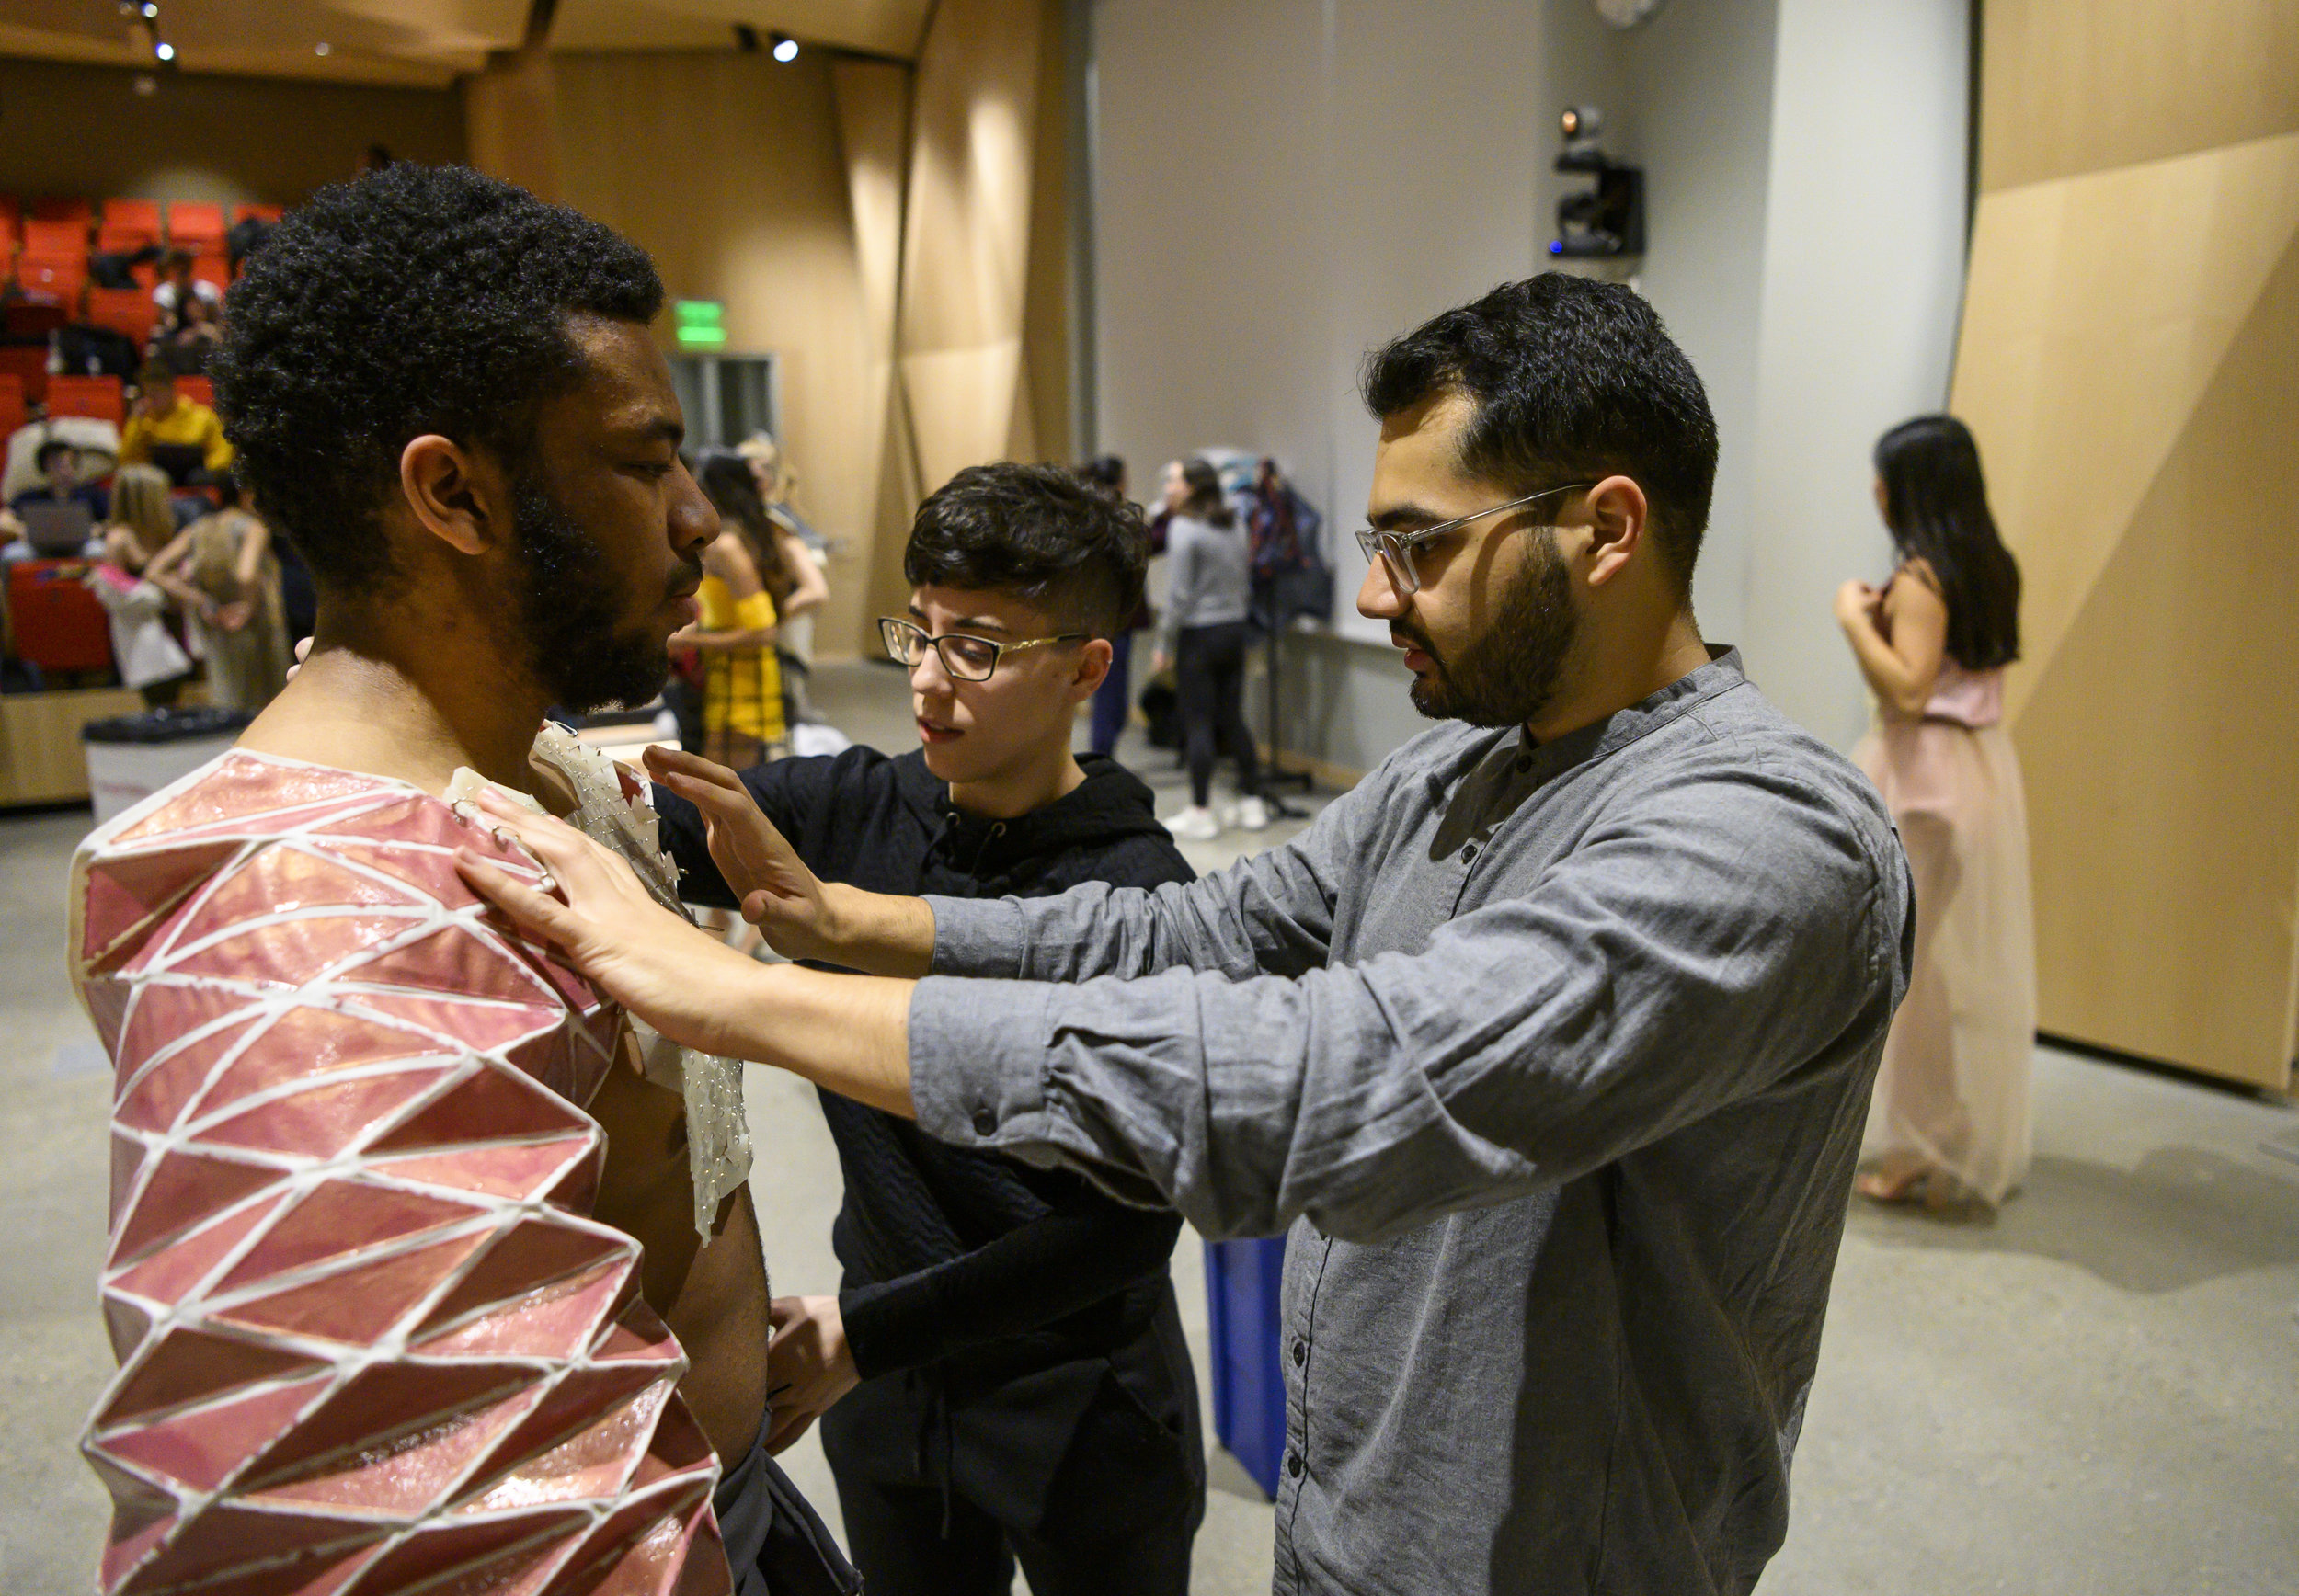 Zain Islam-Hashmi adjusts a top during a rehearsal for Lunar Gala, which will be at 8:00pm on Saturday 02 March at the Cohon University Center. Image Credit: Carnegie Mellon University